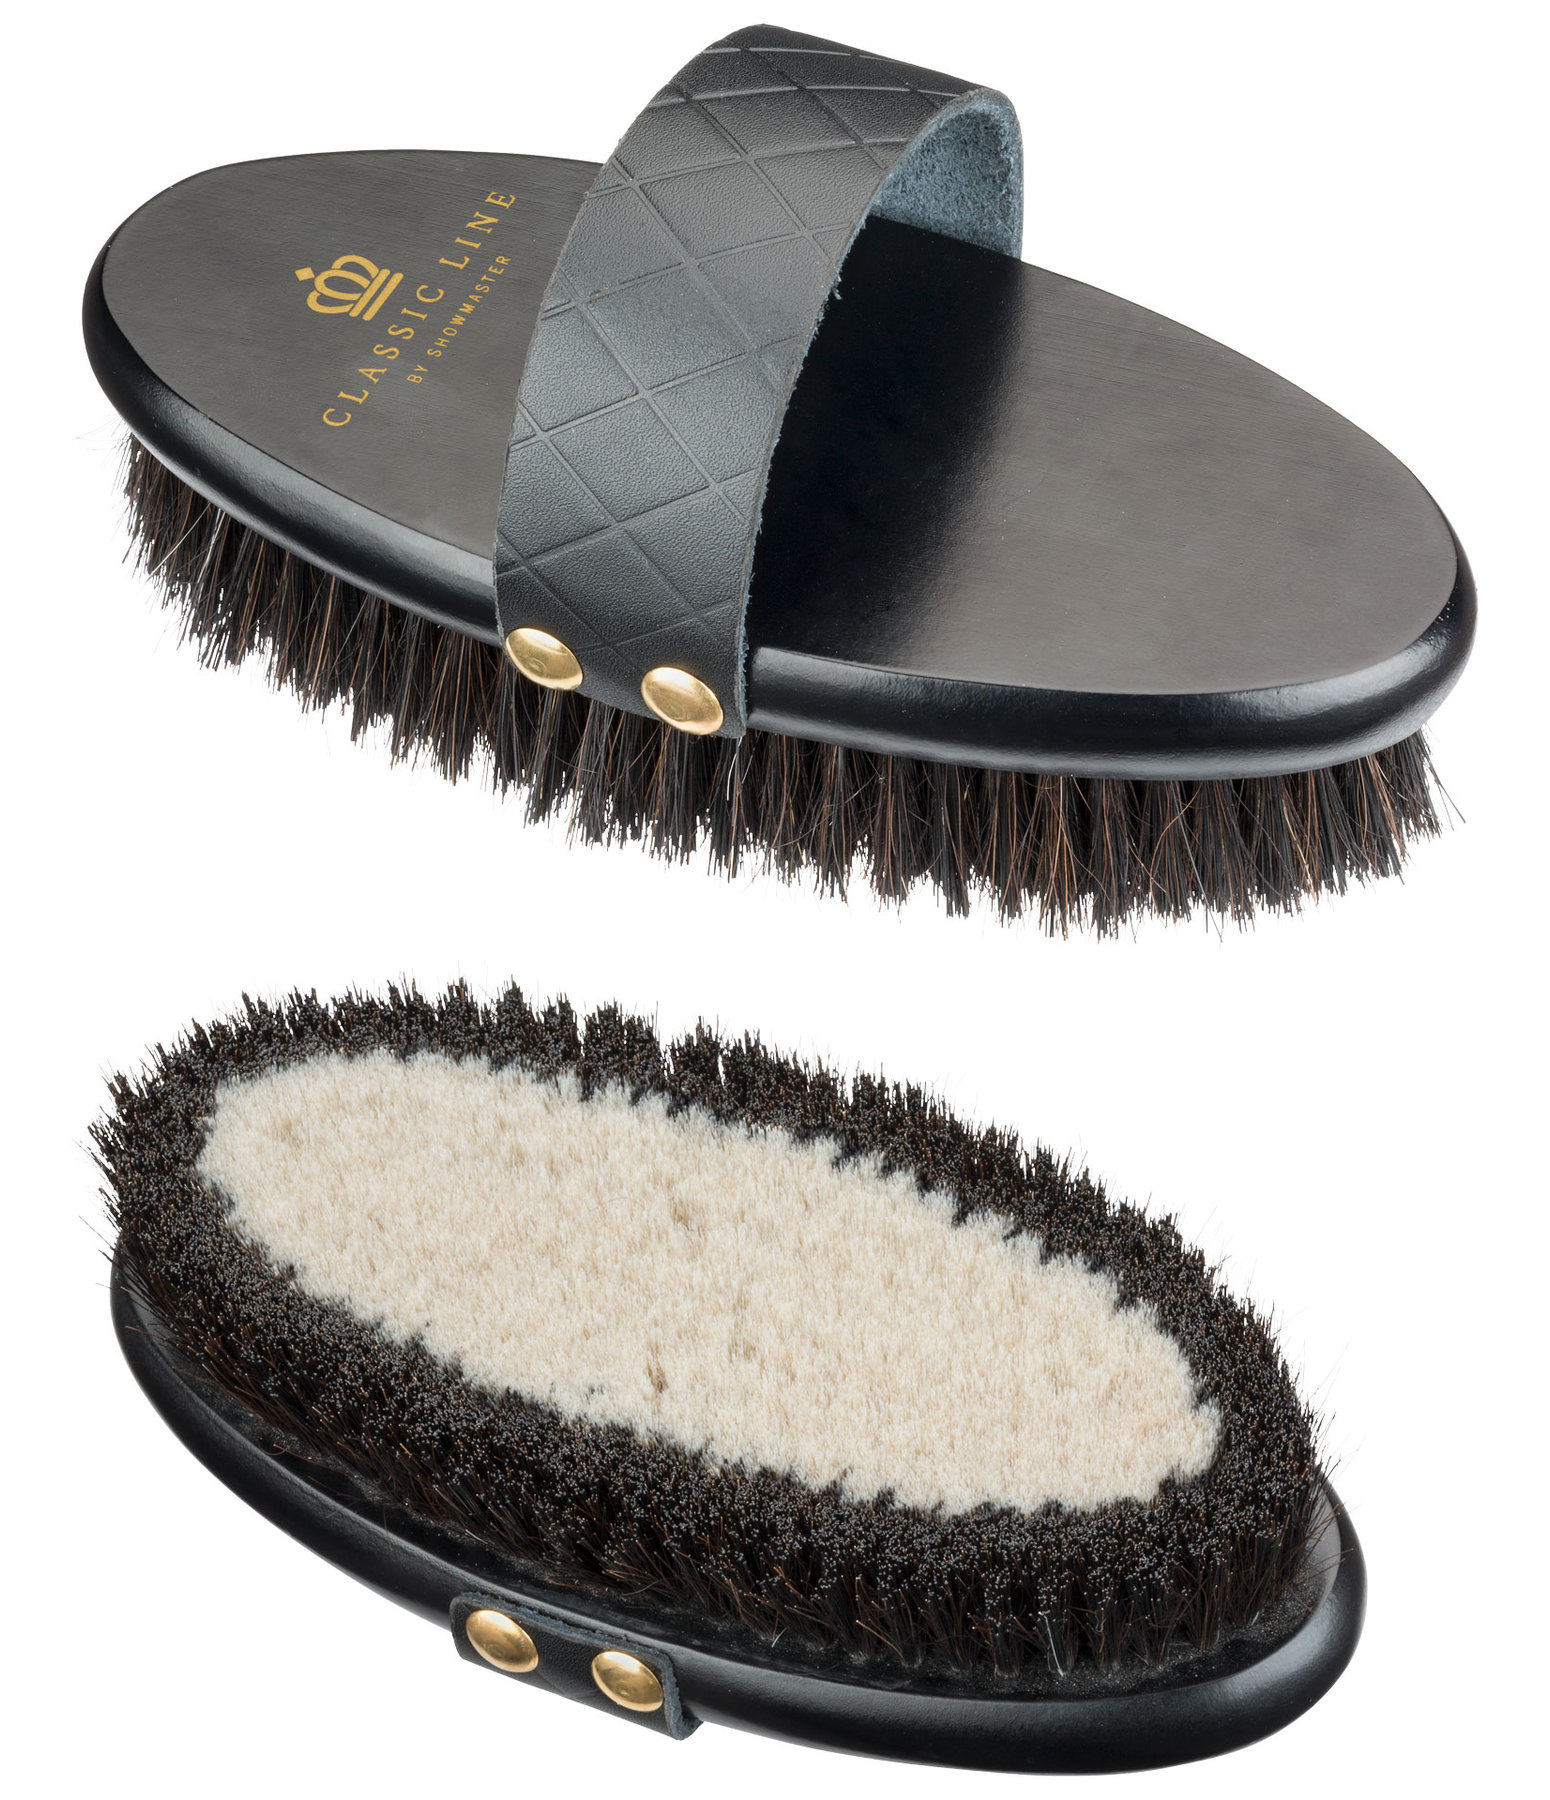 Brosse douce brillance 2 en 1 Classic Line by SHOWMASTER